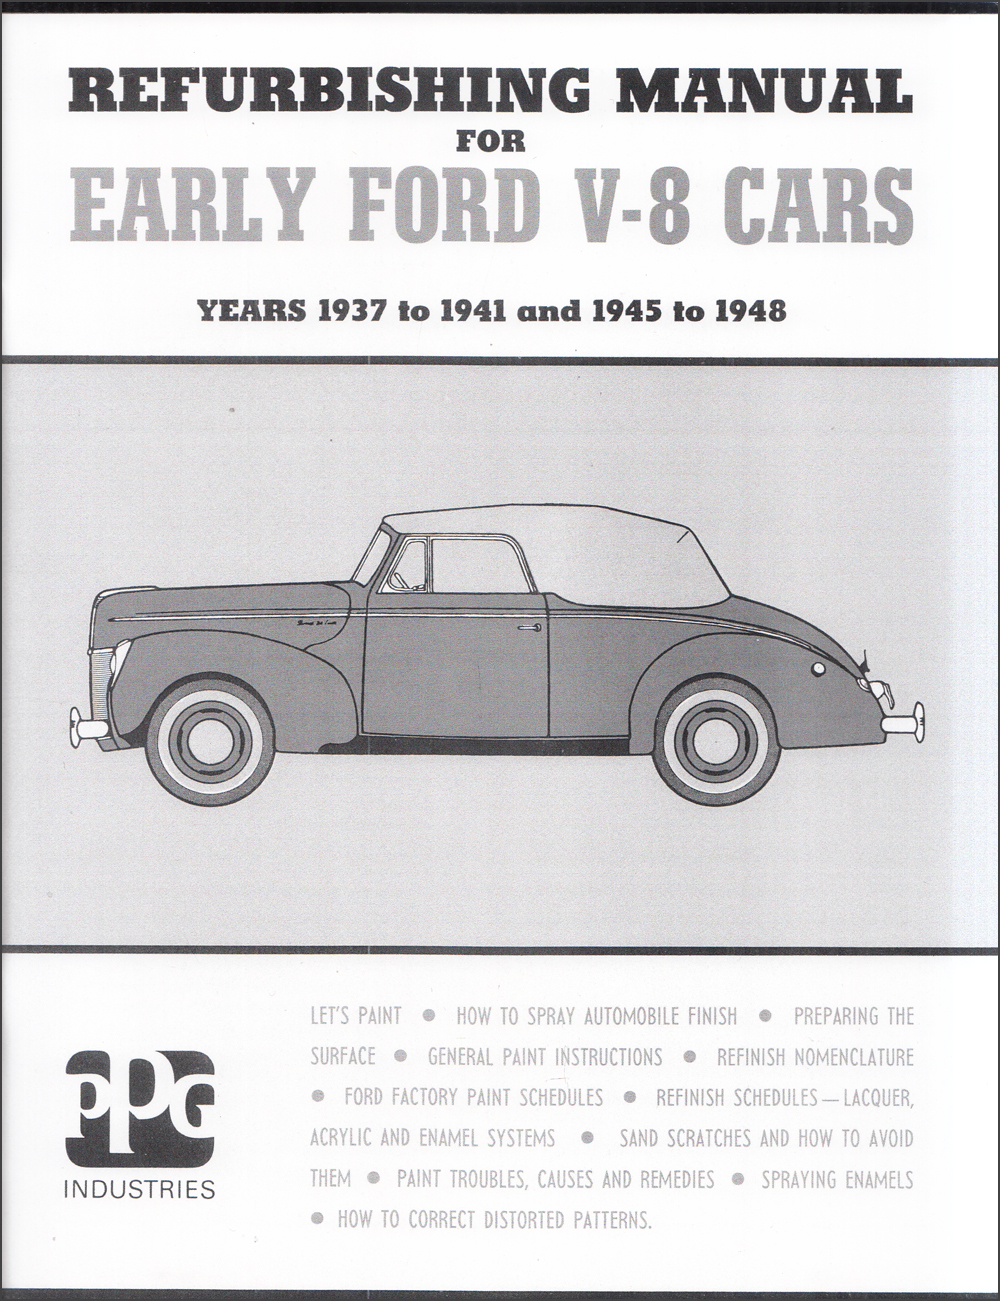 1937-1948 Ford Repaint Manual Model V8